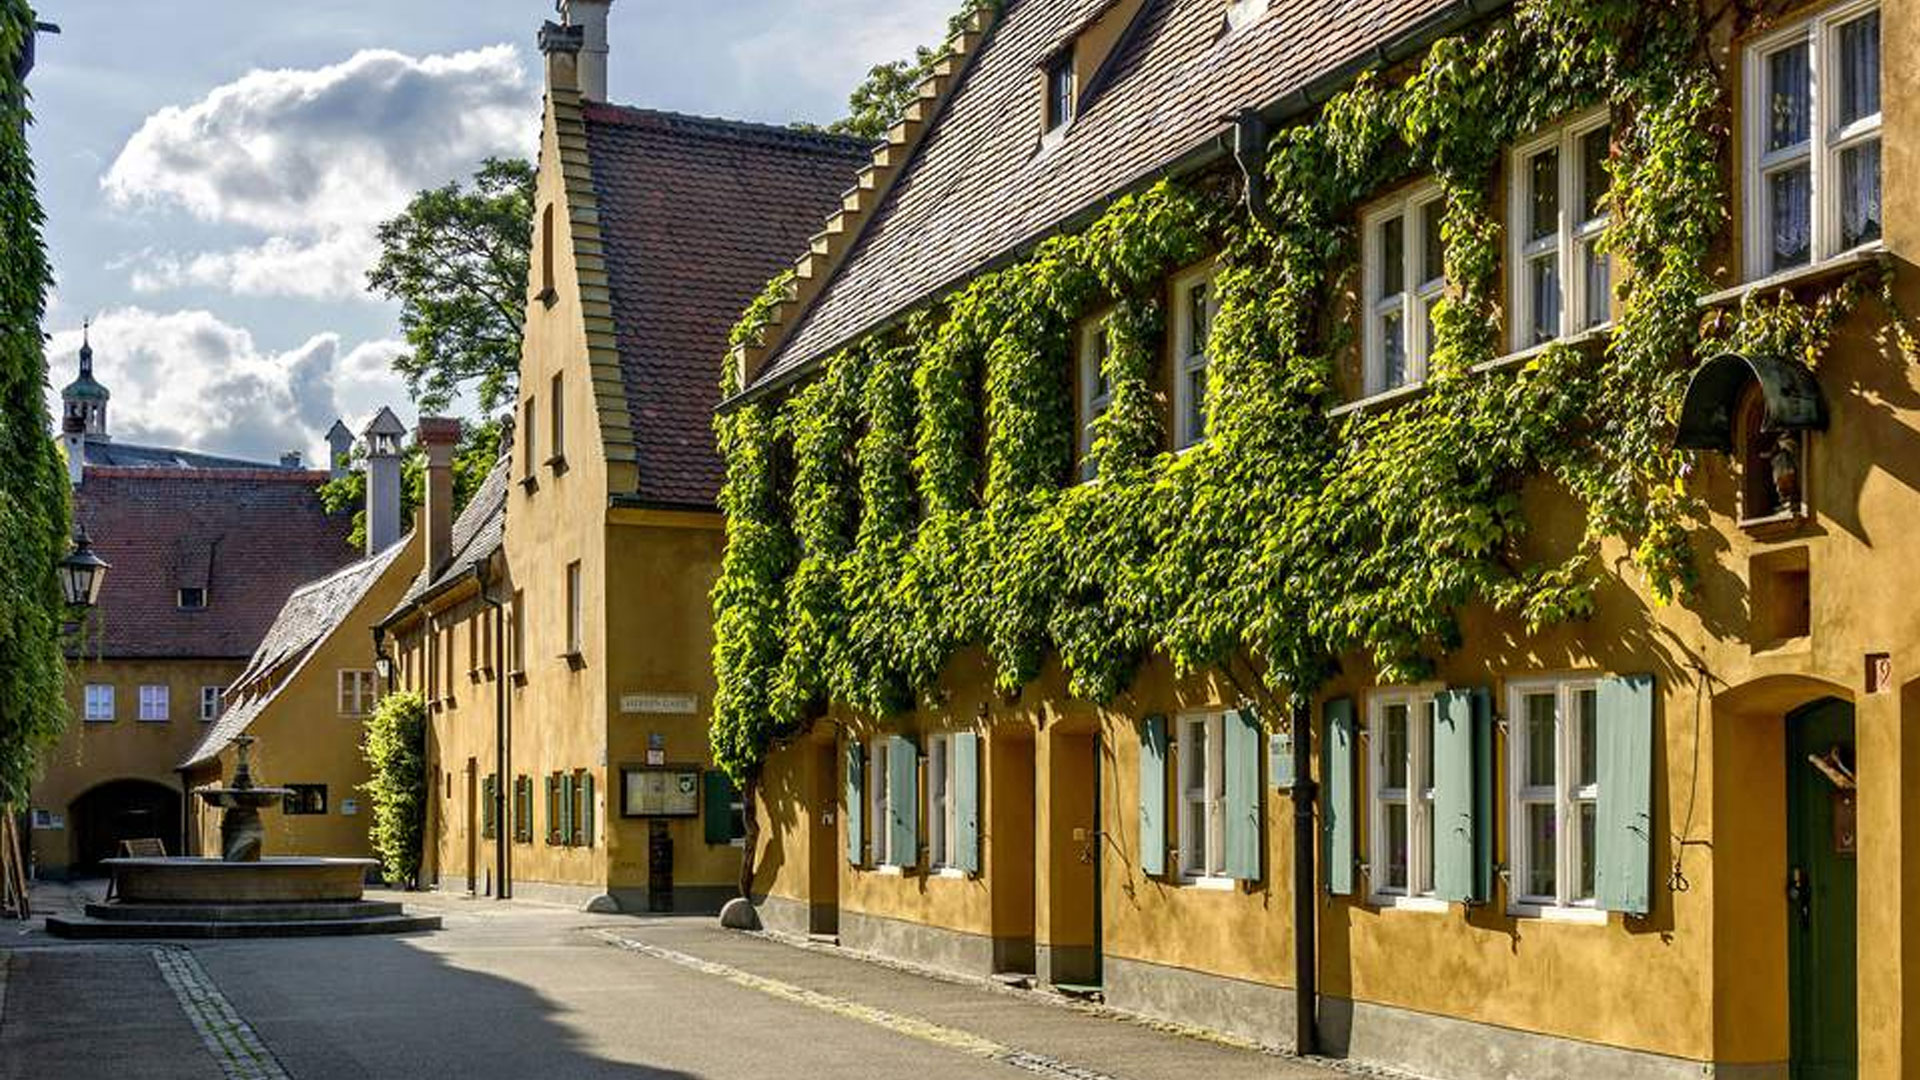 Inside This German Village Rent Of Per House Is Rs 70 A Year